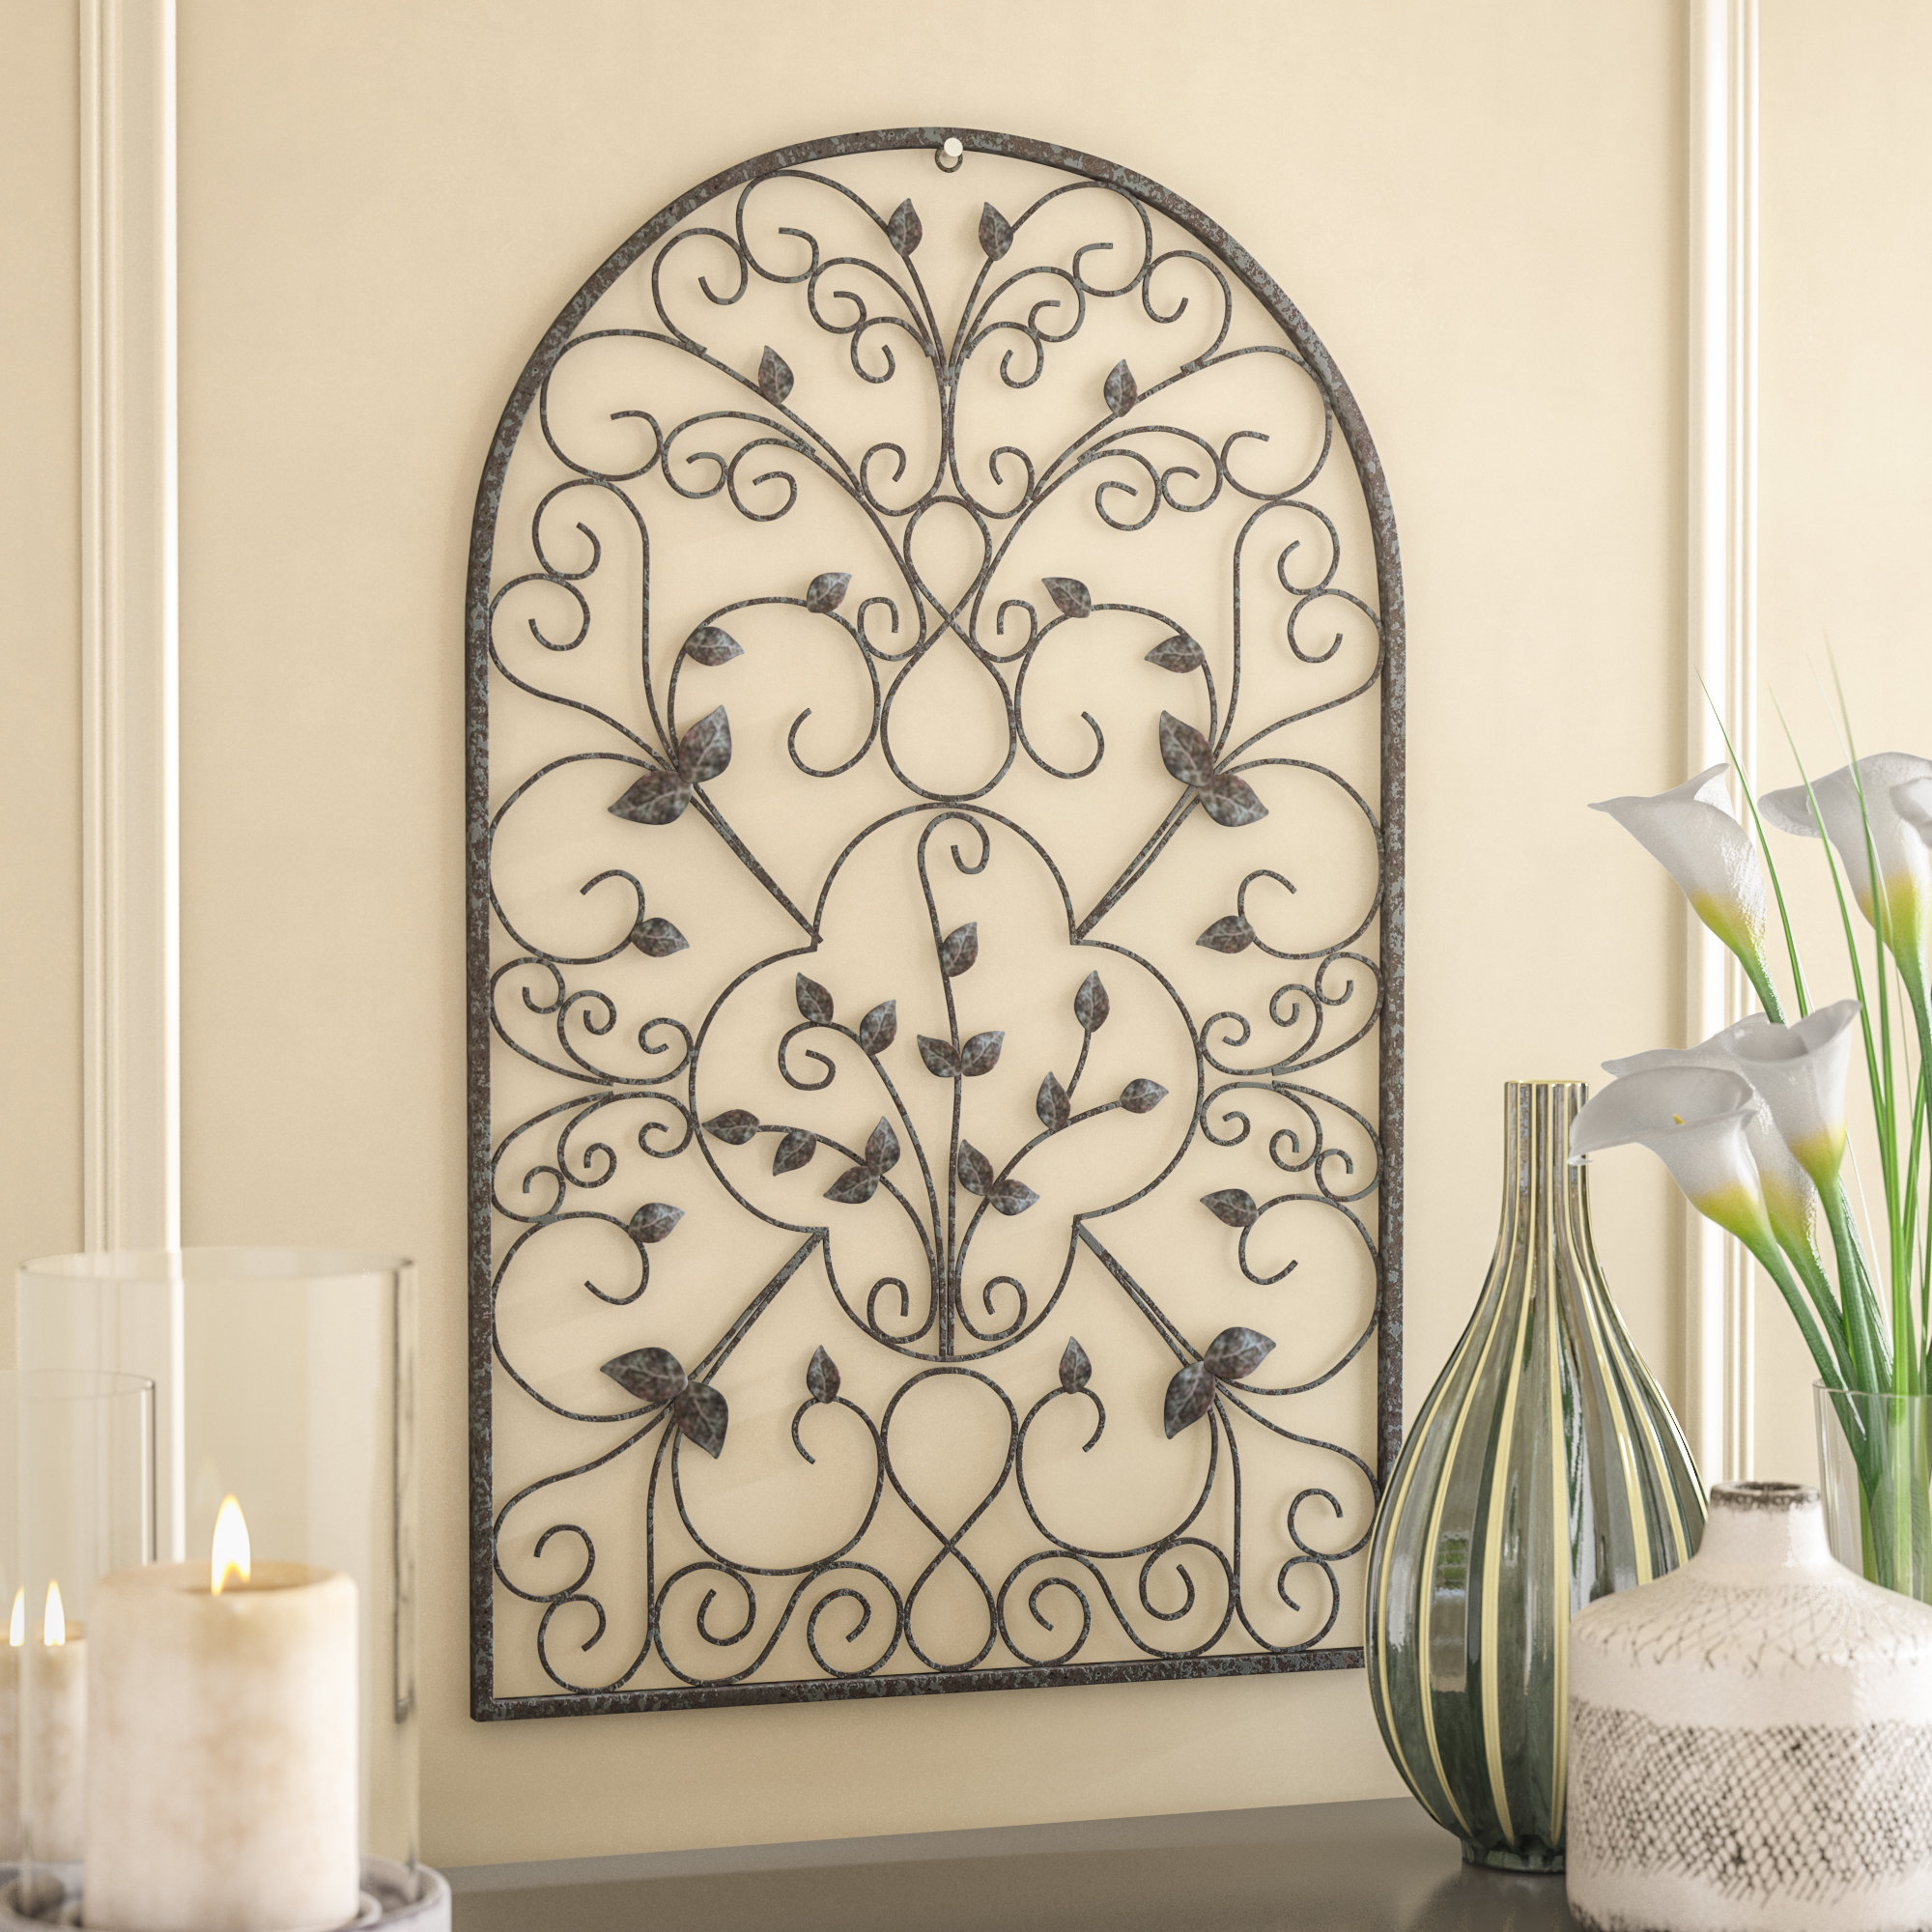 Spanish Ornamental Wall Décor Within Spanish Ornamental Wall Decor (View 7 of 30)